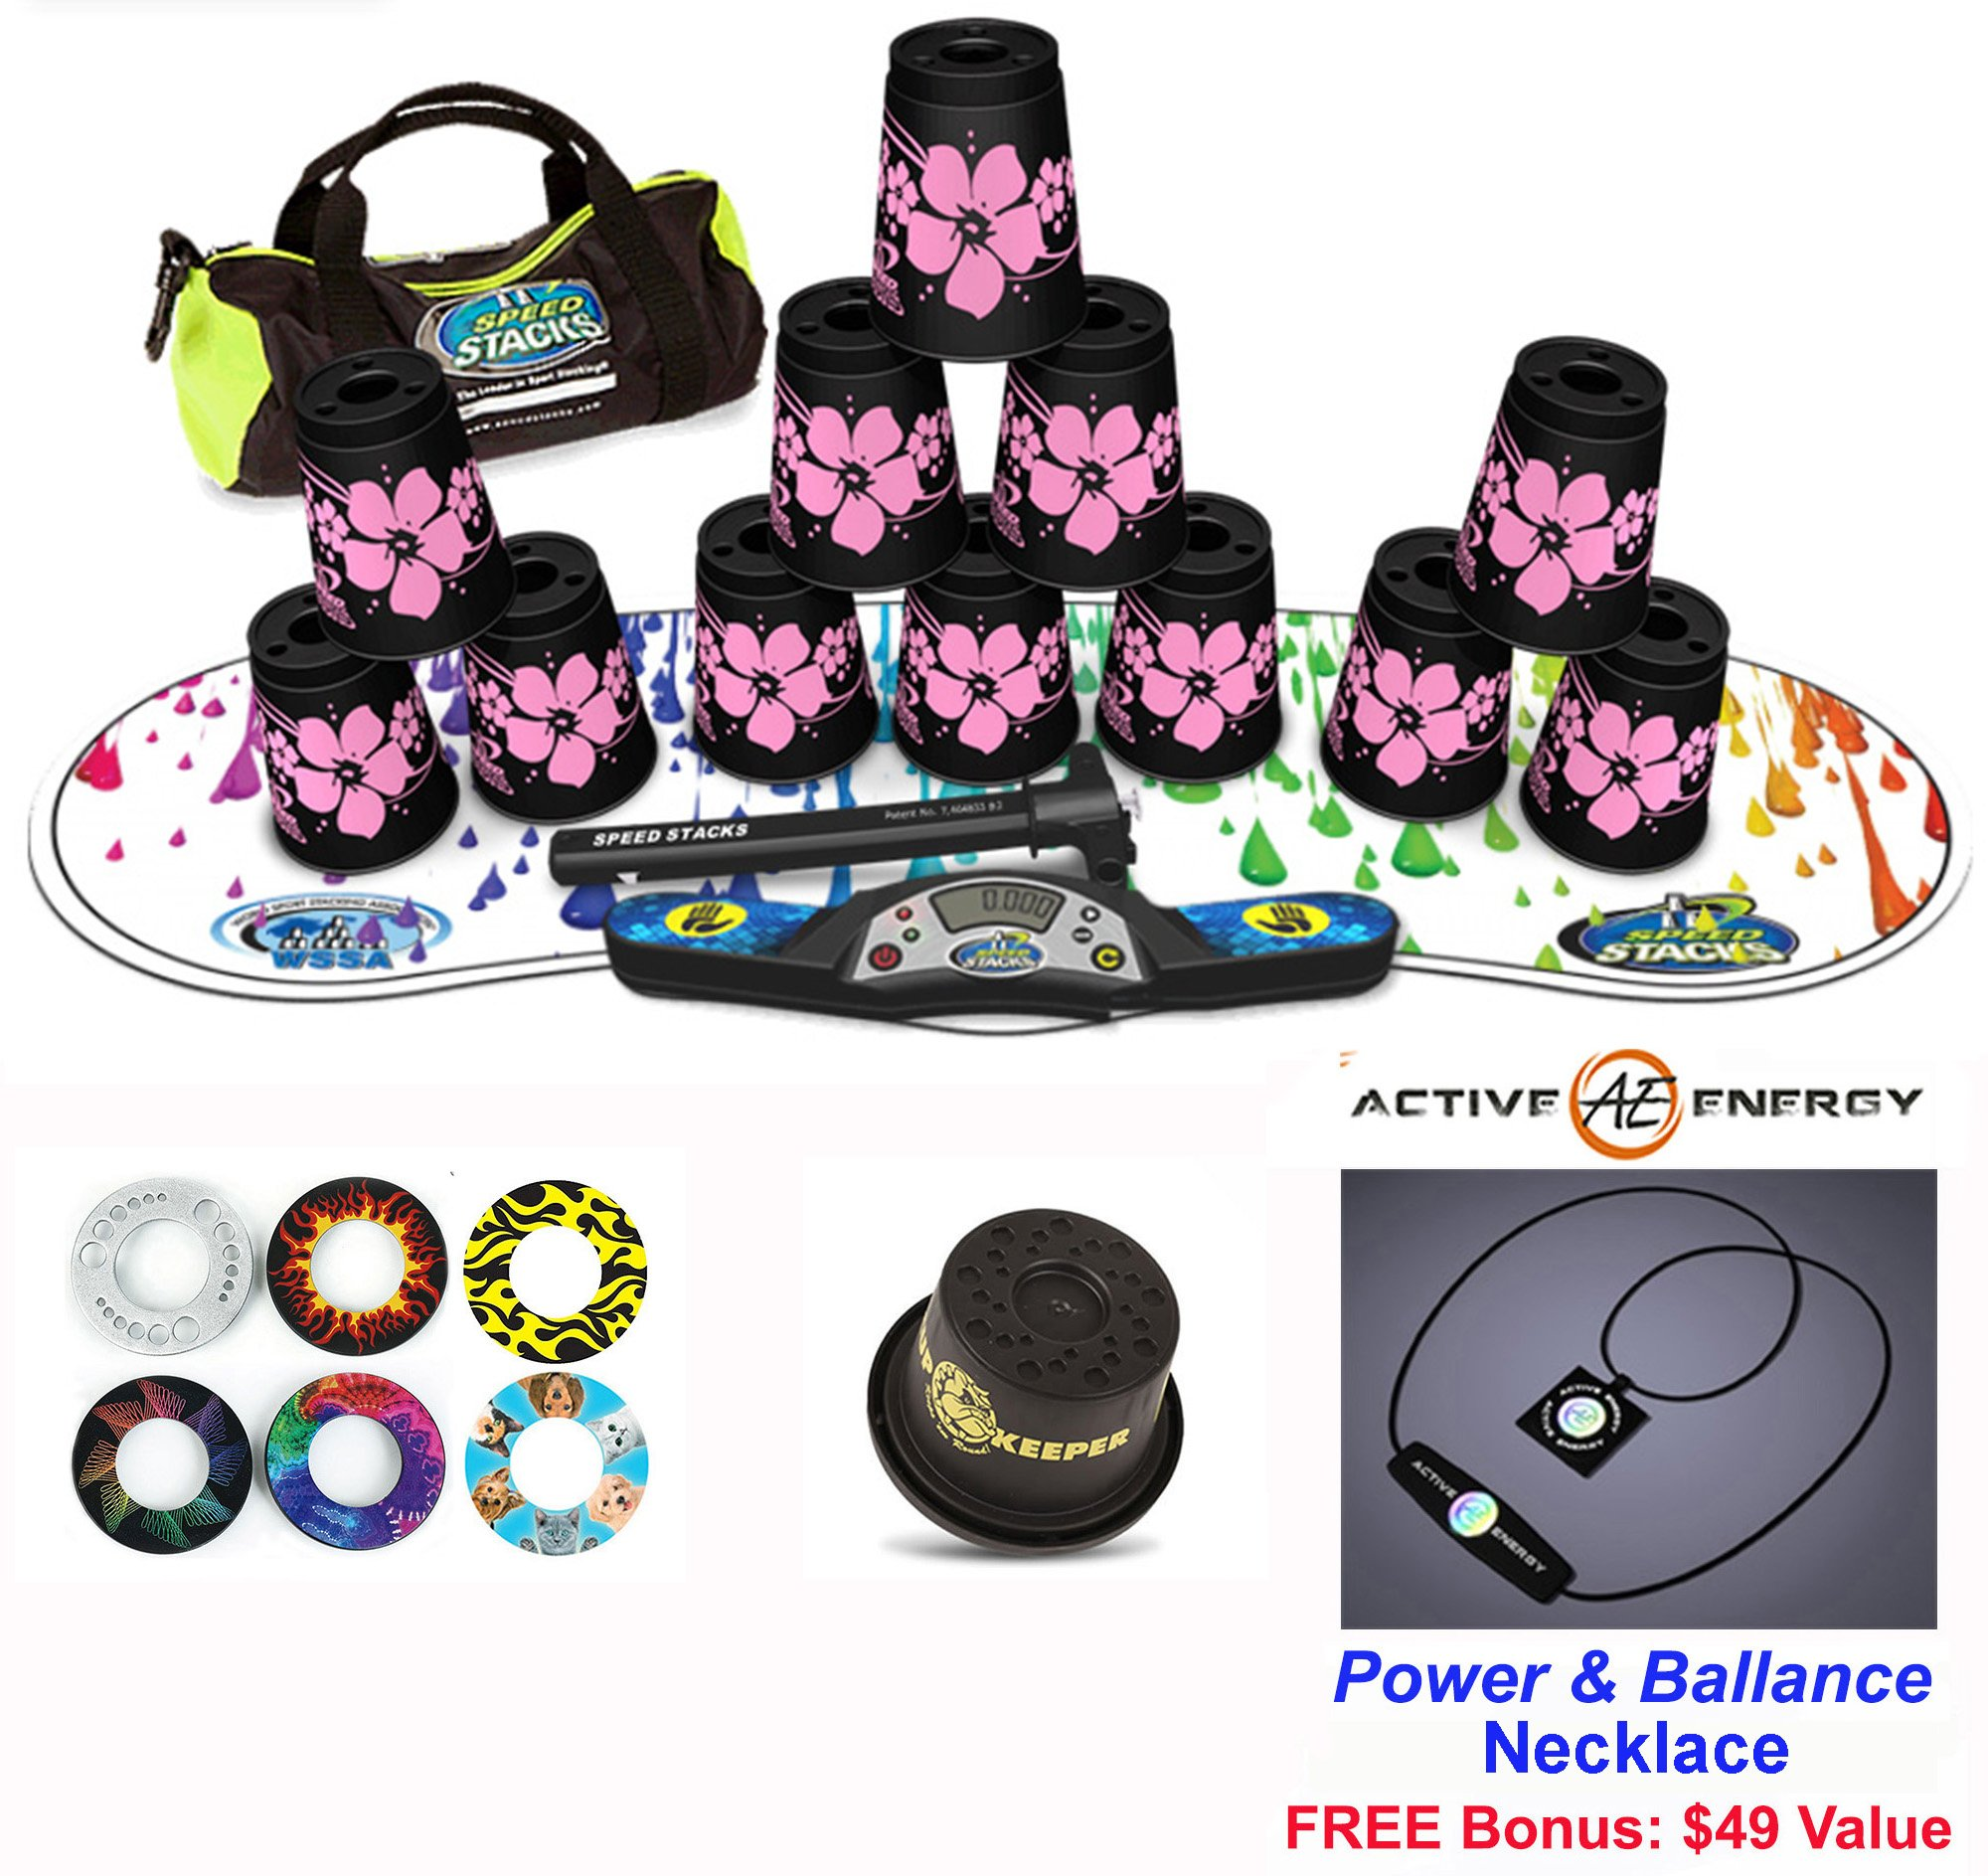 Speed Stacks Combo Set ''The Works'': 12 PINK HAWAIIAN 4'' Cups, RAINBOW DROP Gen 3 Mat, G4 Pro Timer, Cup Keeper, Stem, Gear Bag + Active Energy Necklace by Speed Stacks